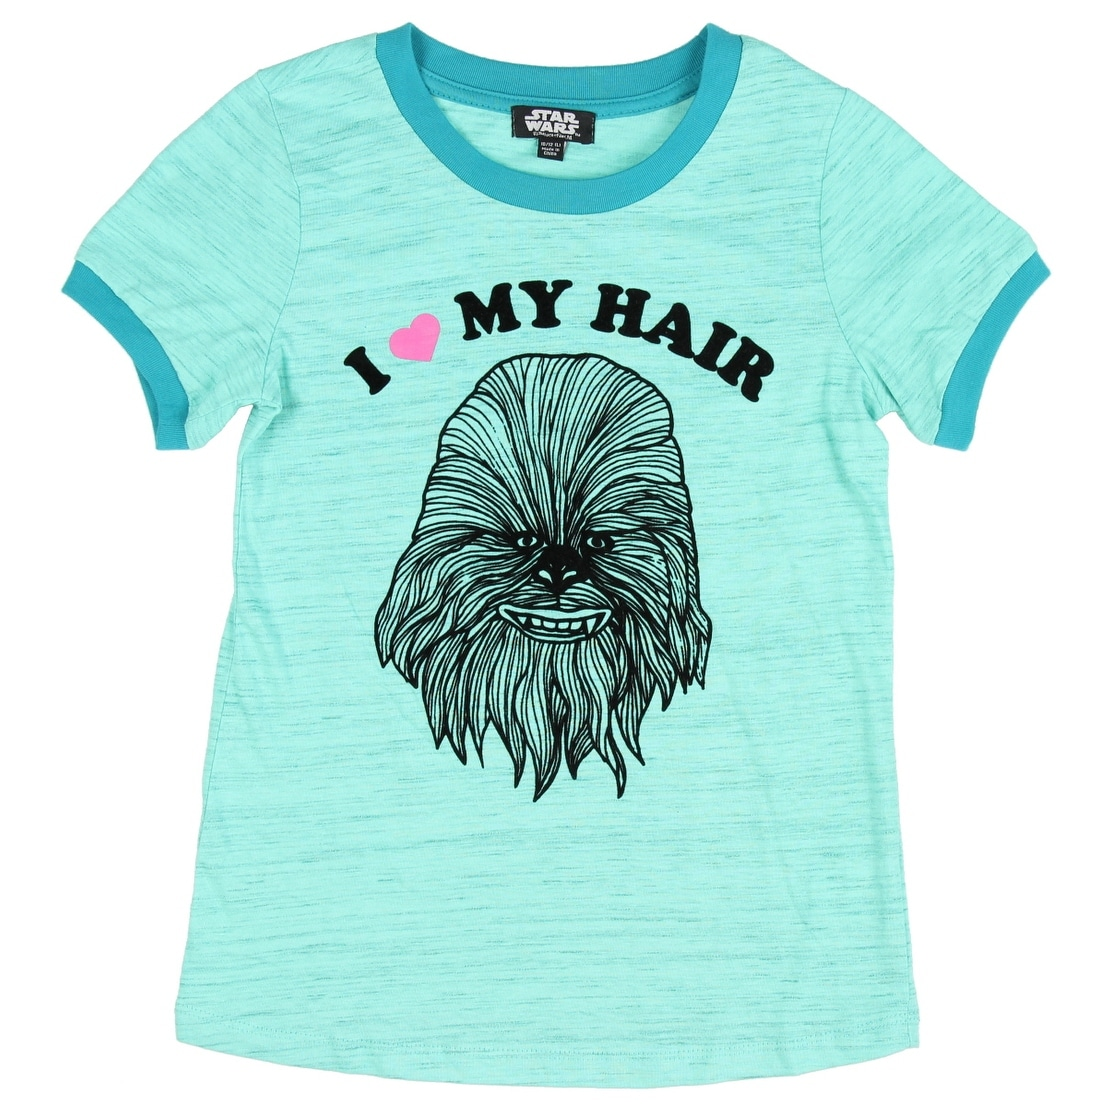 22557a7b8 Shop Star Wars Big Girls' Chewbacca I Love My Hair T-Shirt Wookie Movie  Character Tee - Free Shipping On Orders Over $45 - Overstock - 15798802